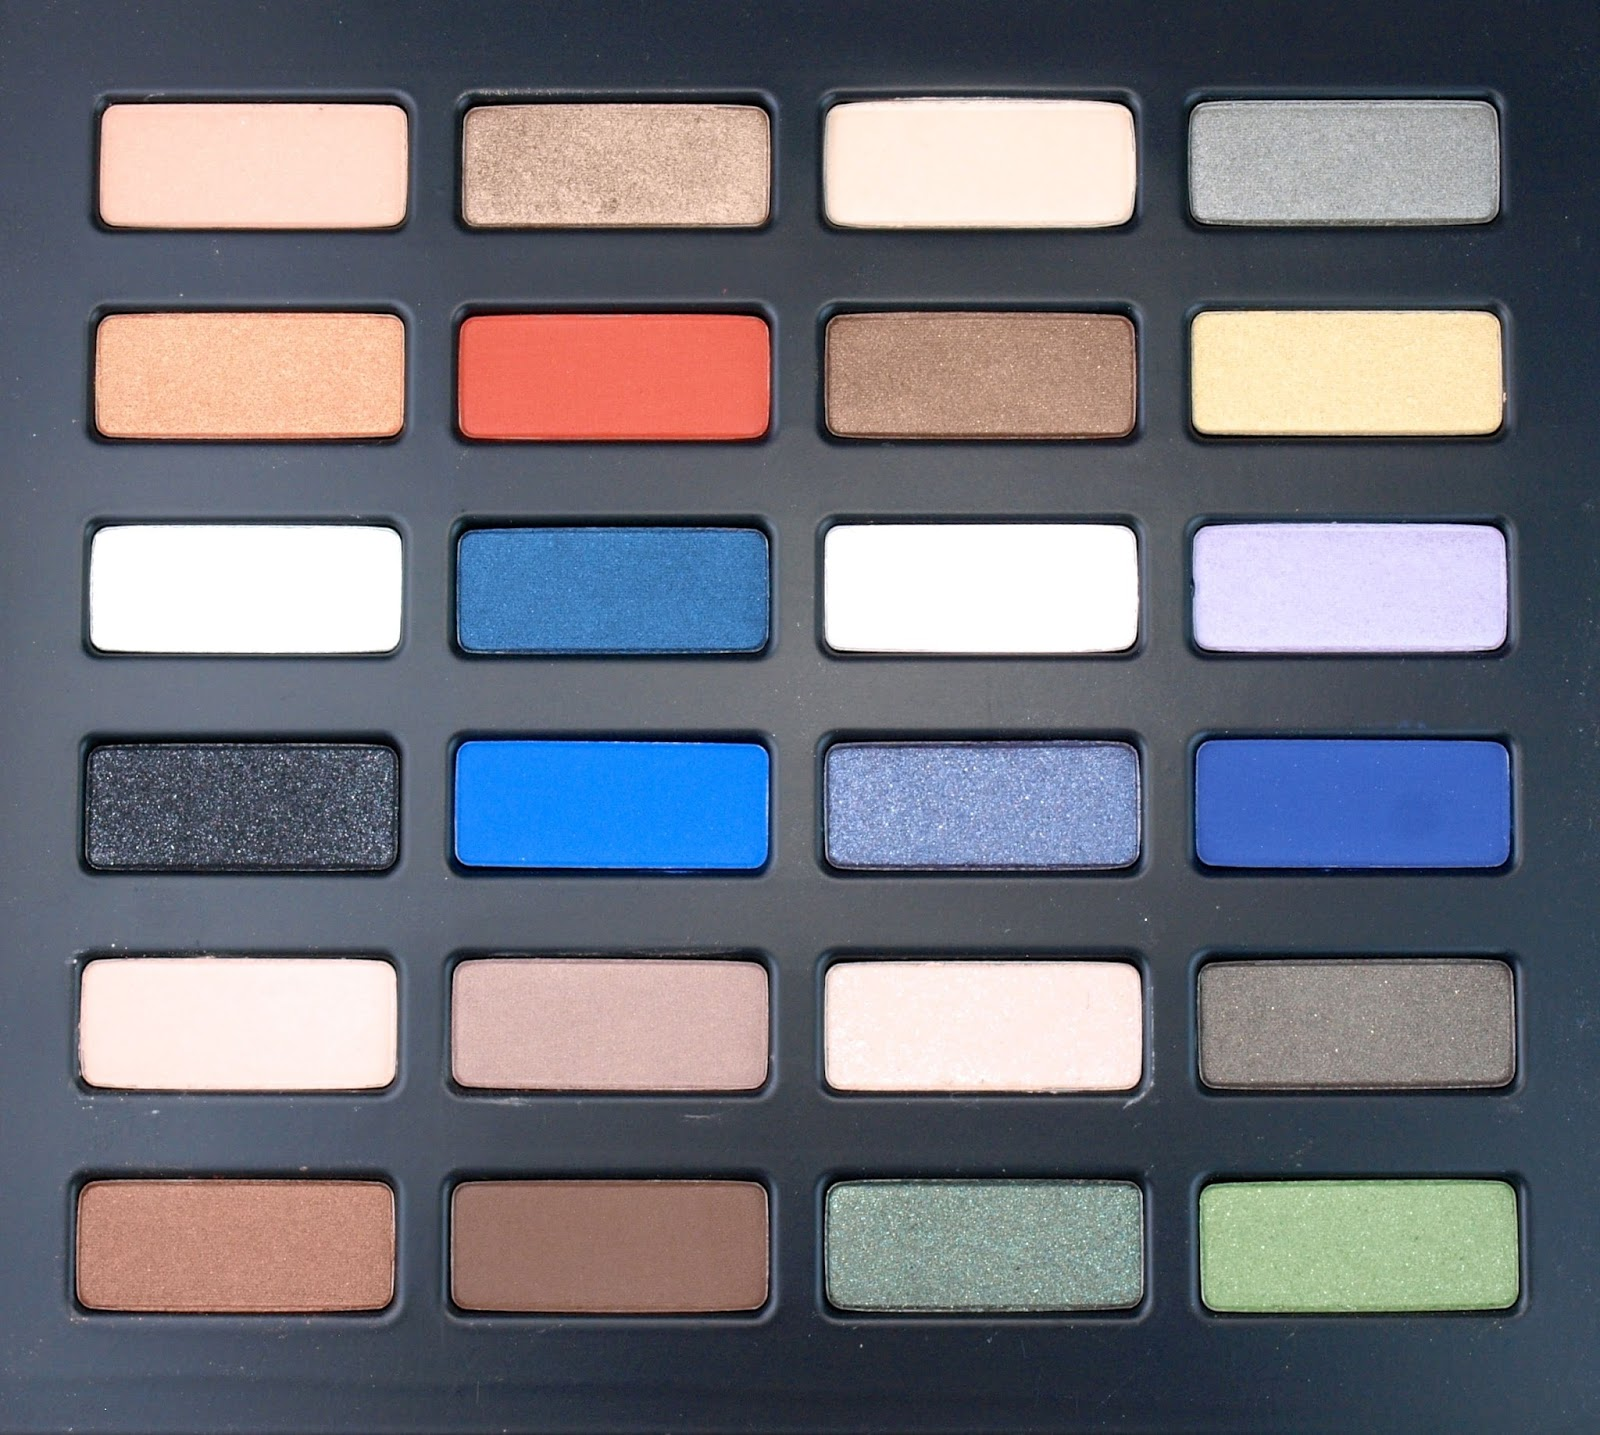 Kat Von D Holiday 2014 Star Studded Eyeshadow Book: Review and Swatches